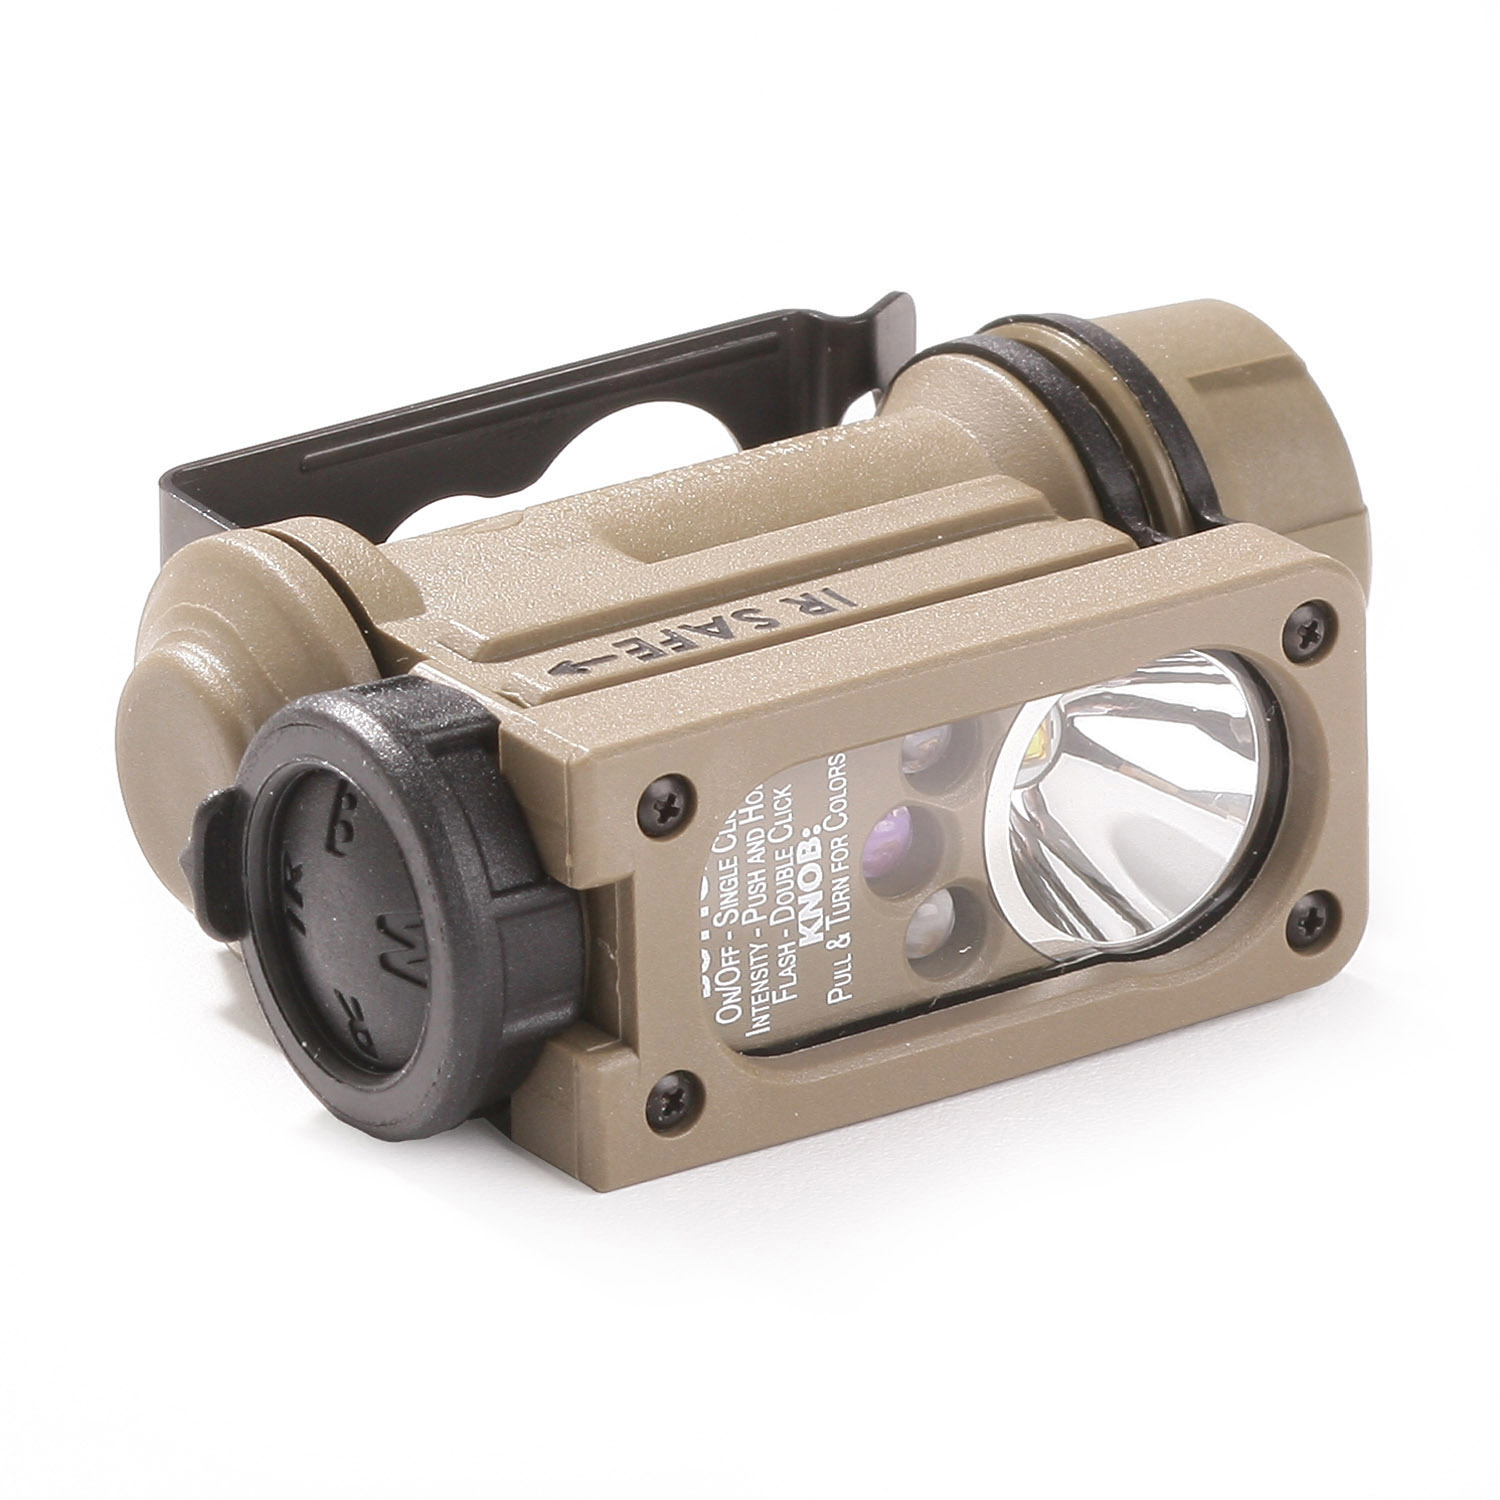 Streamlight Sidewinder Compact II Military Model with Helmet